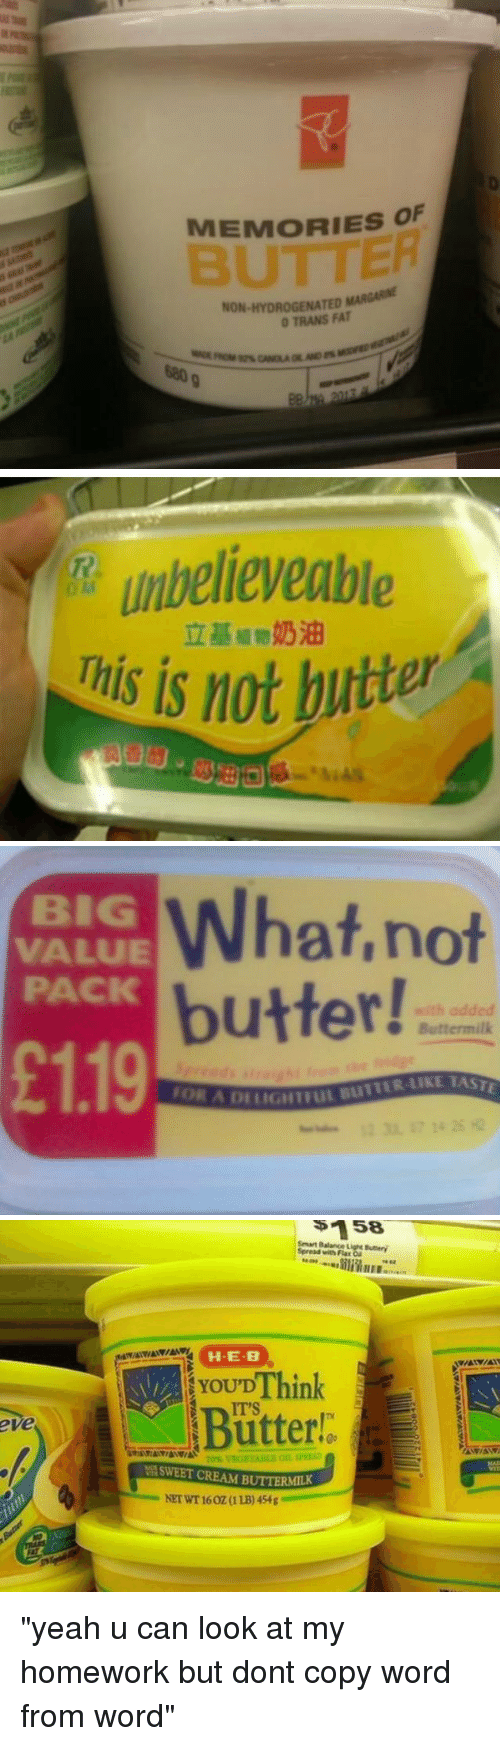 """Funny: MEMORIES OF  NON HYDROGENATED MAR  0 TRANS FAT   unbelieveable  This is not butter   What, not  VALUE  PACK  butter!  with added  Buttermilk  £119  ITIUL BUTTER LIKE   eve  Smart Balance  Spread with FlaE ON  HE-B  Think  YOU'D  Butter!  SWEET CREAM BU """"yeah u can look at my homework but dont copy word from word"""""""